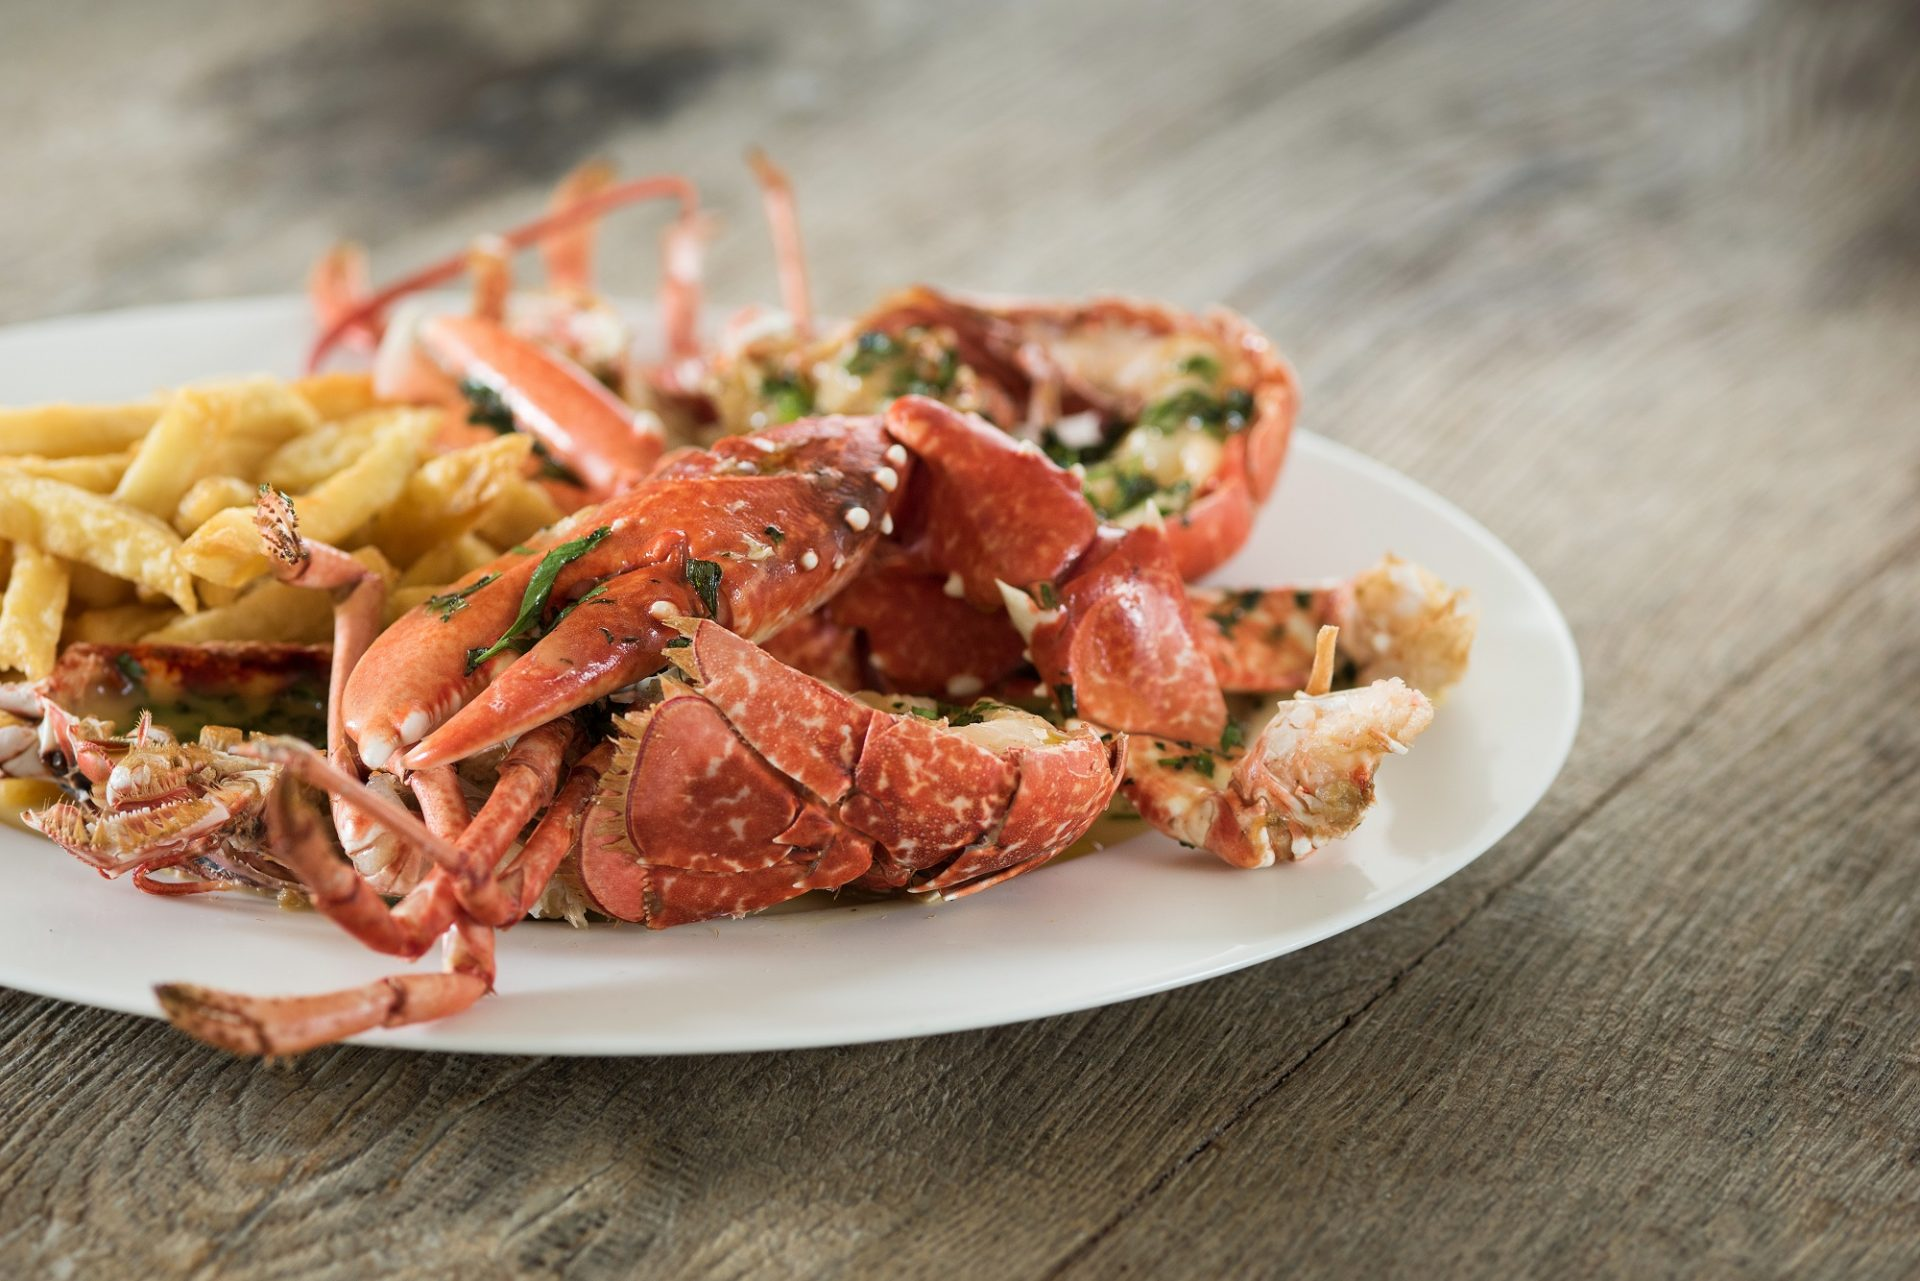 Dinner parties by Stein's - Corwnall Dine with a private Rick Stein chef. Lobster and chips.